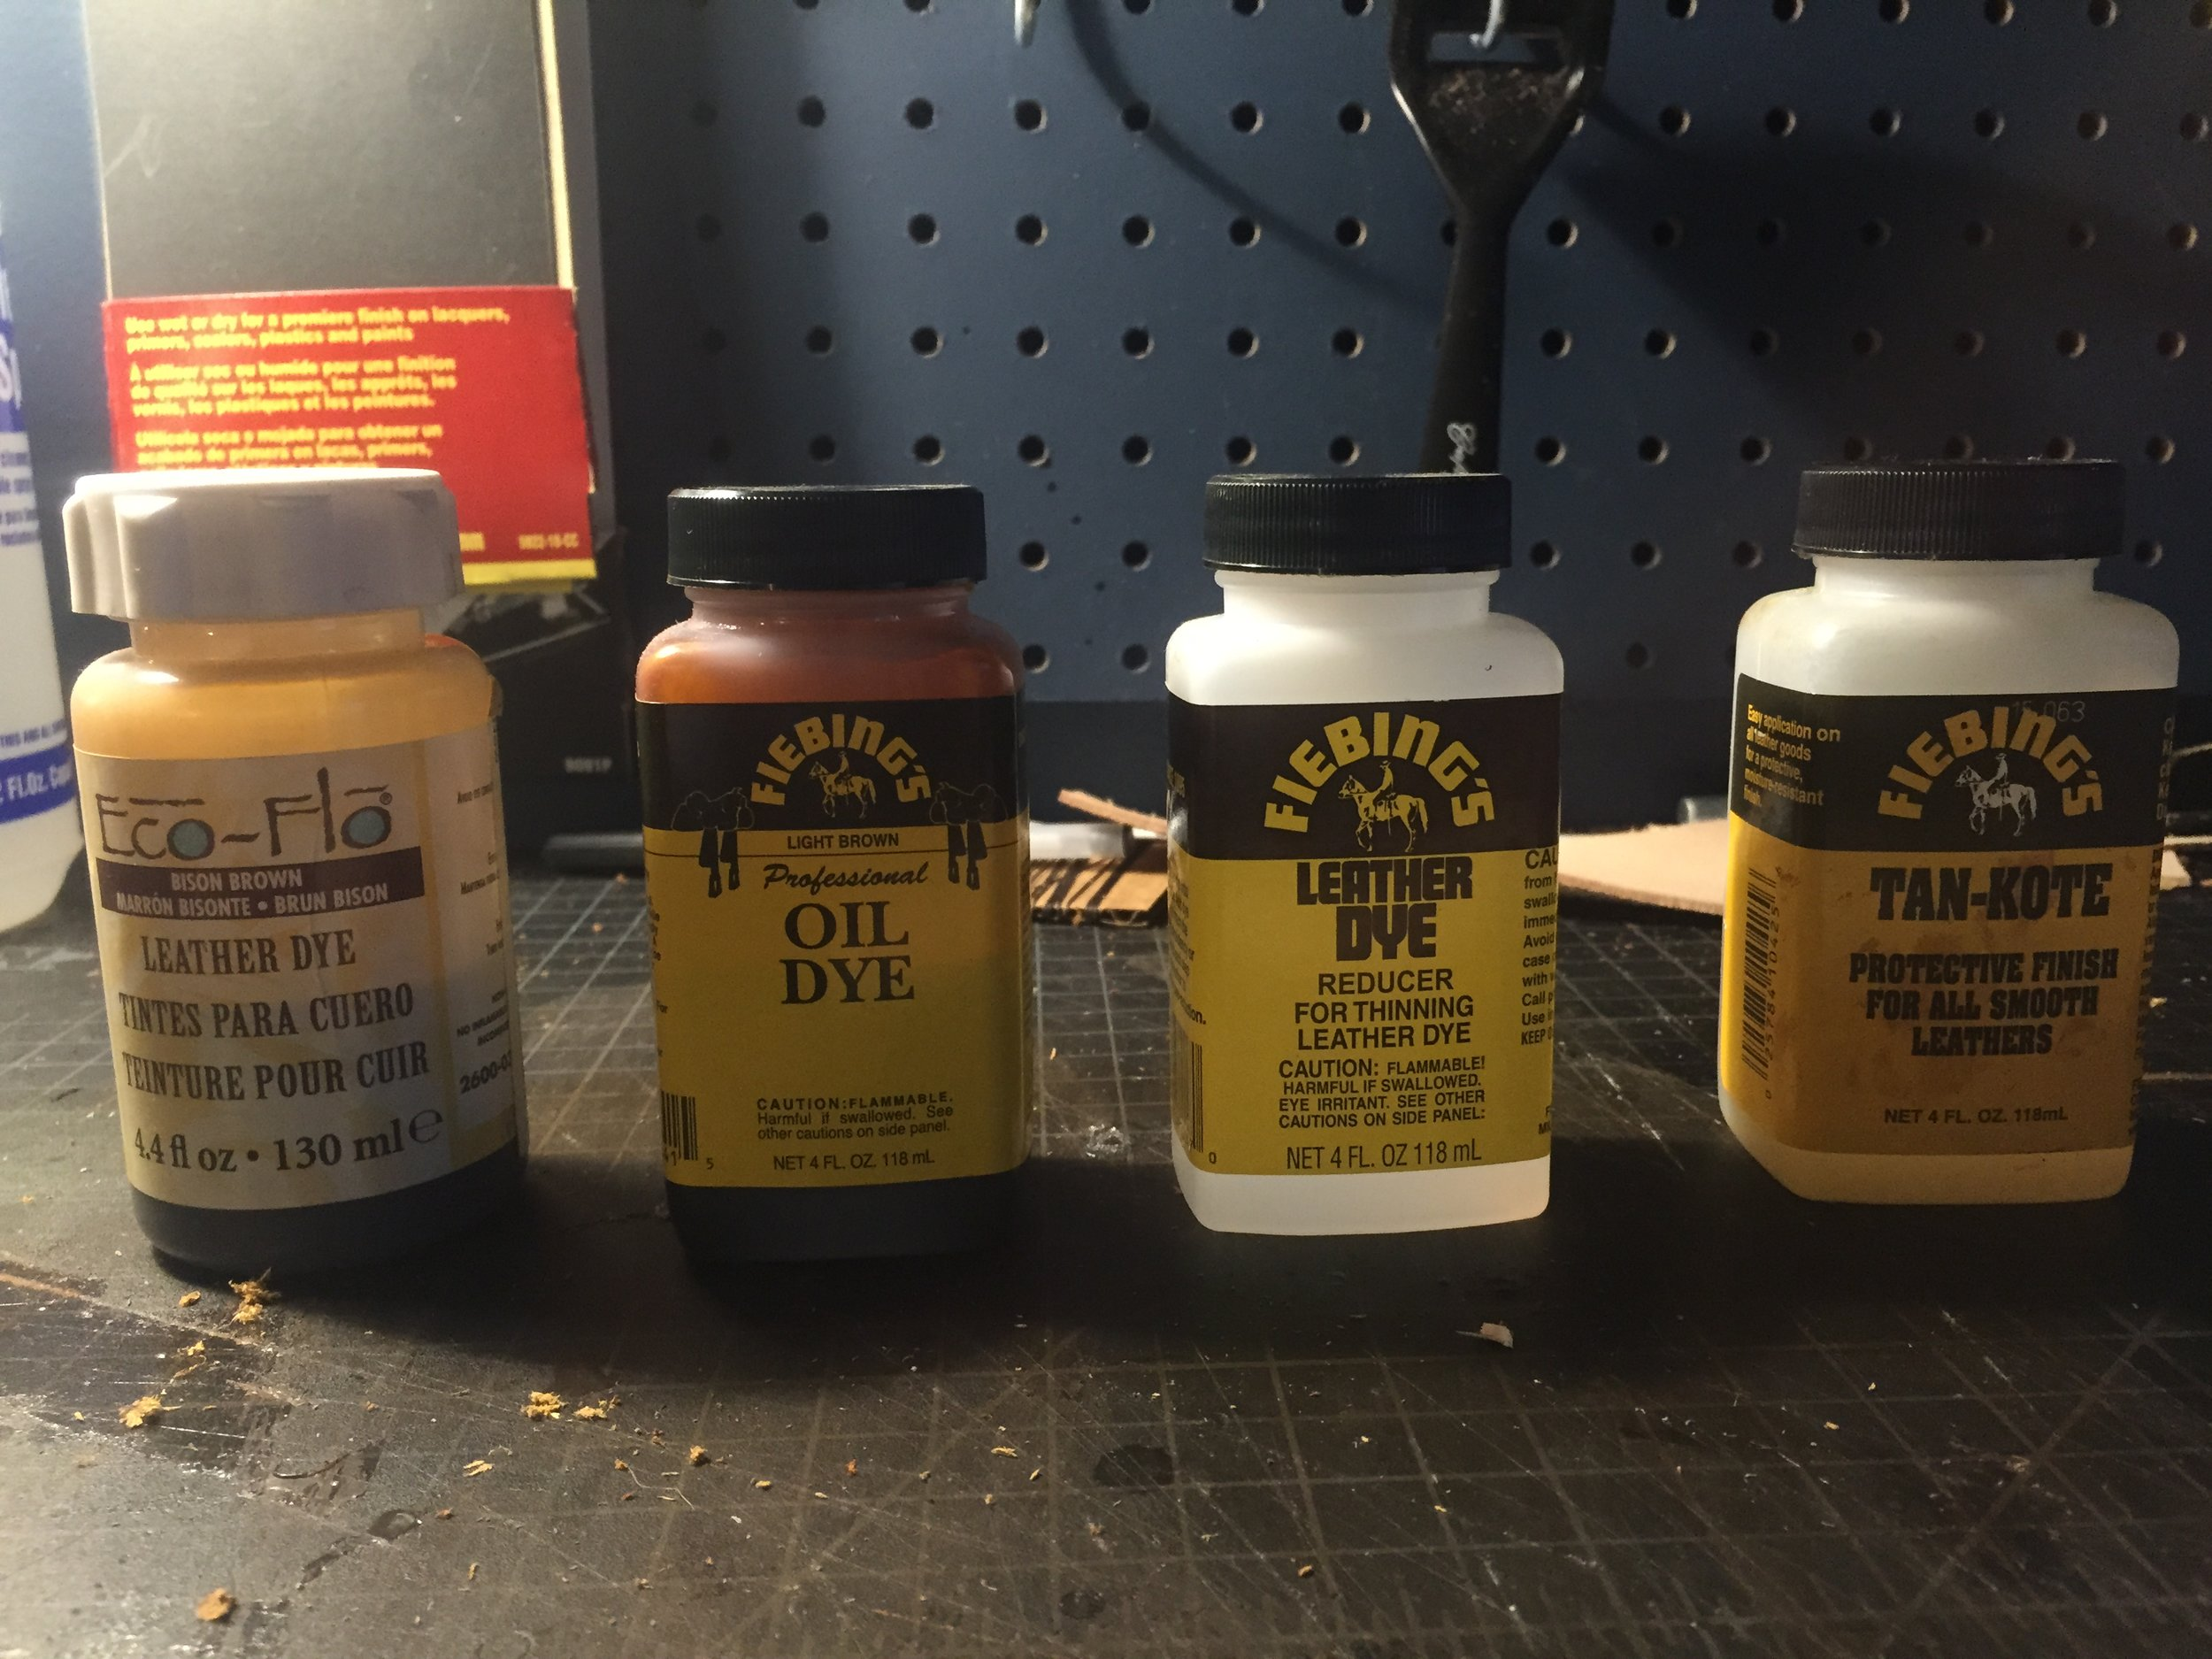 From left to right: Water Based Dye, Oil Based Dye, Dye Reducer, and finally Tan-Kote Leather Finish